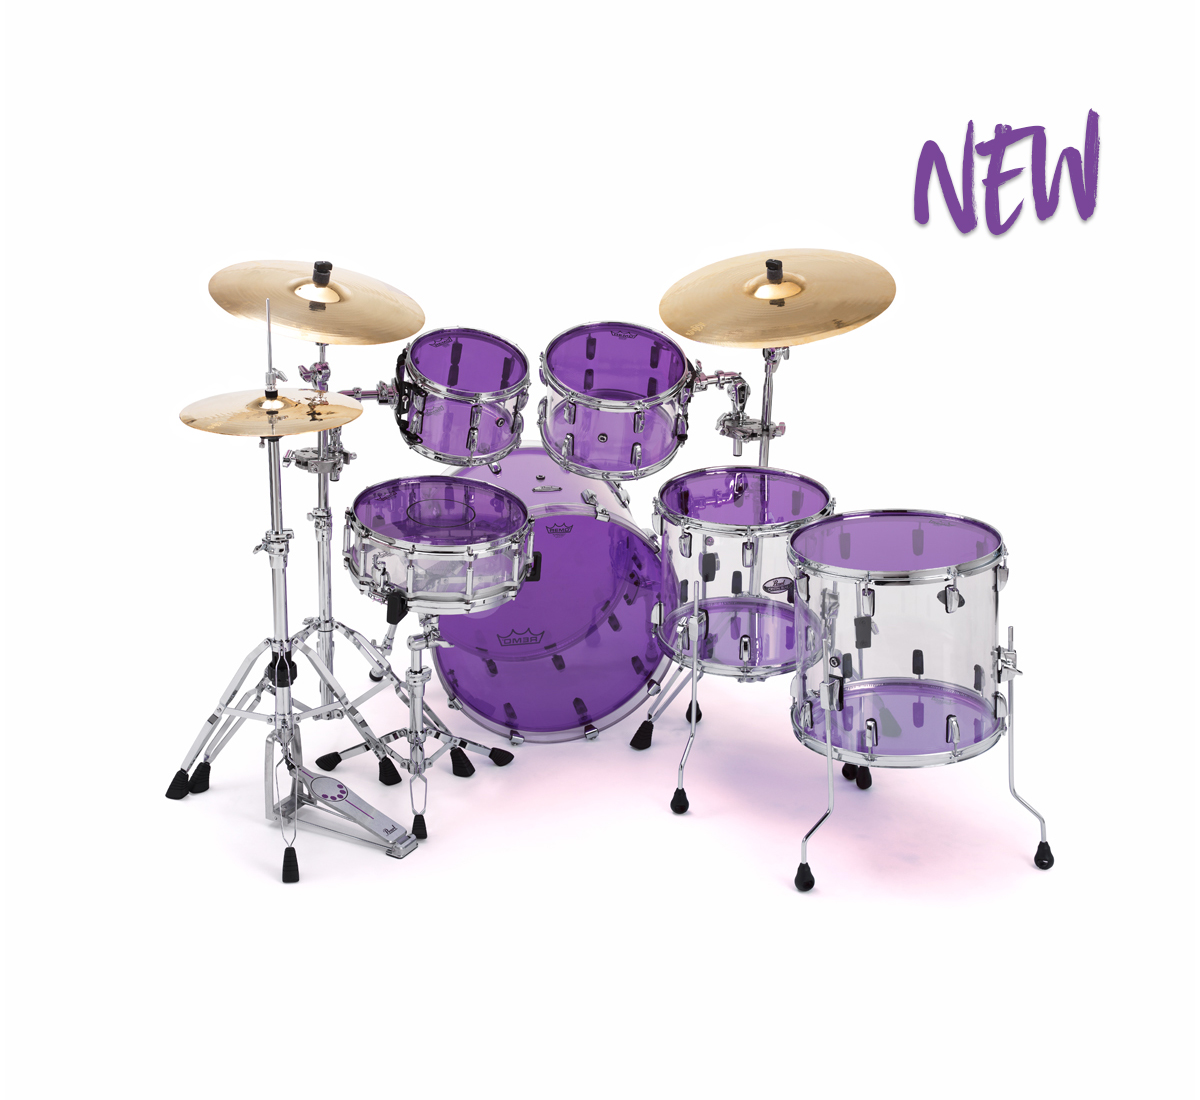 14 cliparts for free. Download Drum clipart green drum set and use.